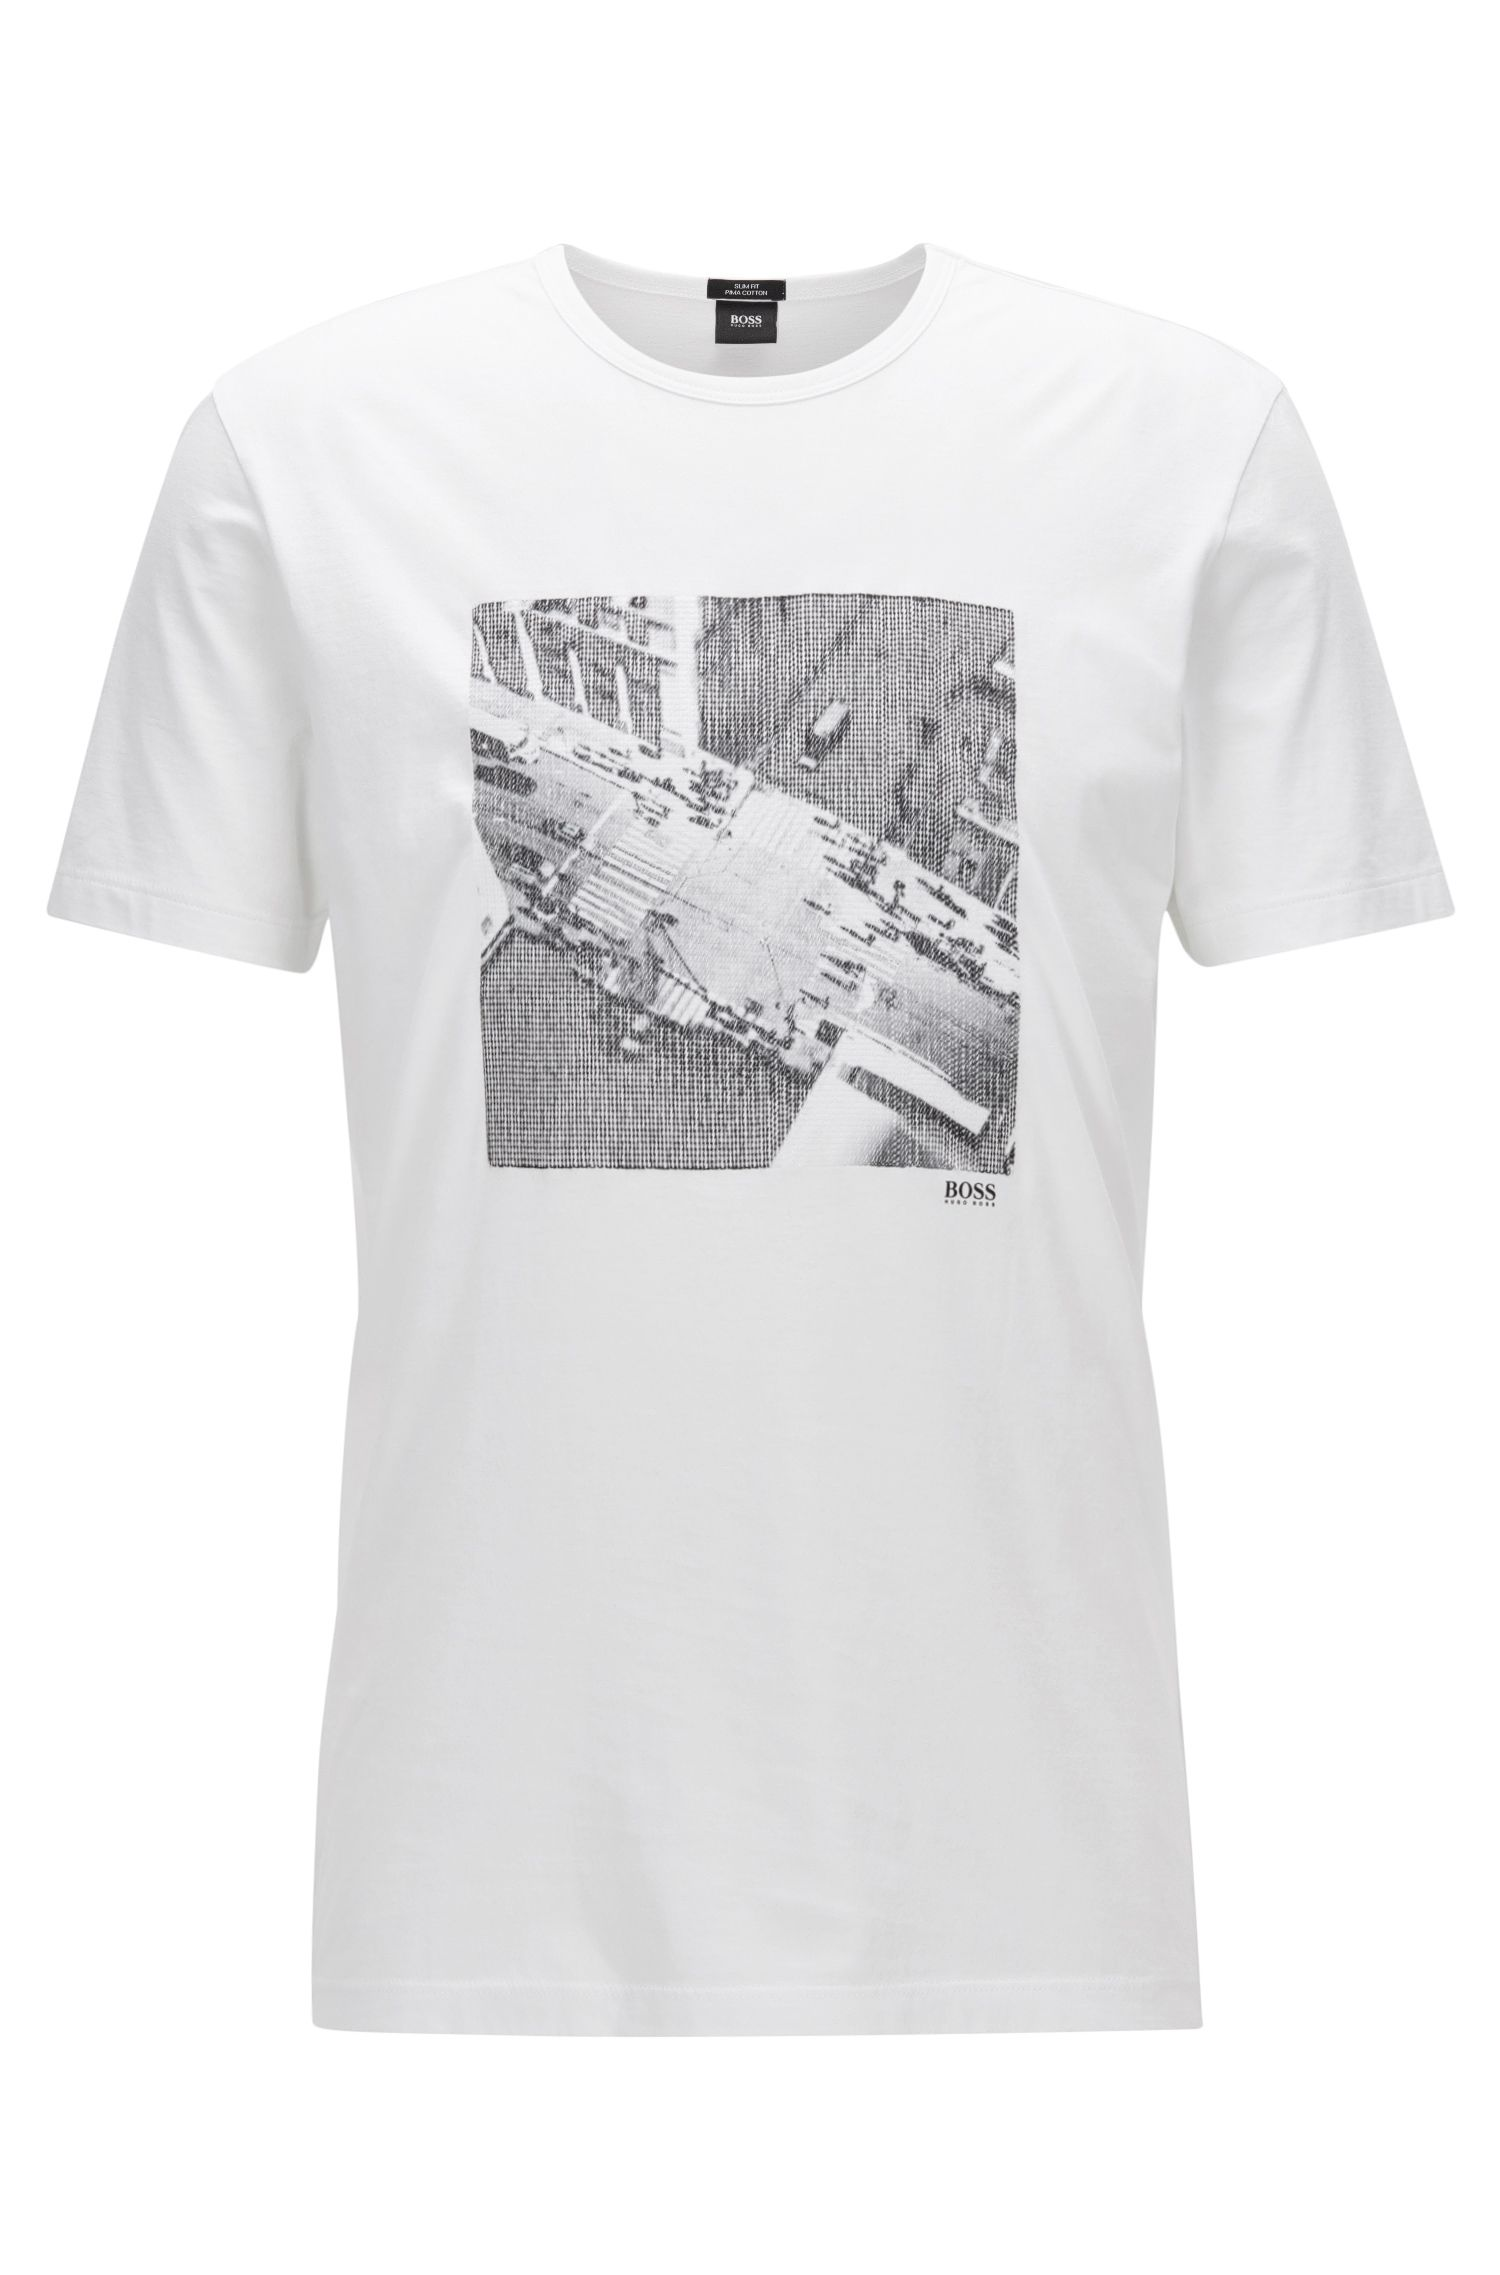 Camiseta slim fit en algodón Pima con estampado NYC